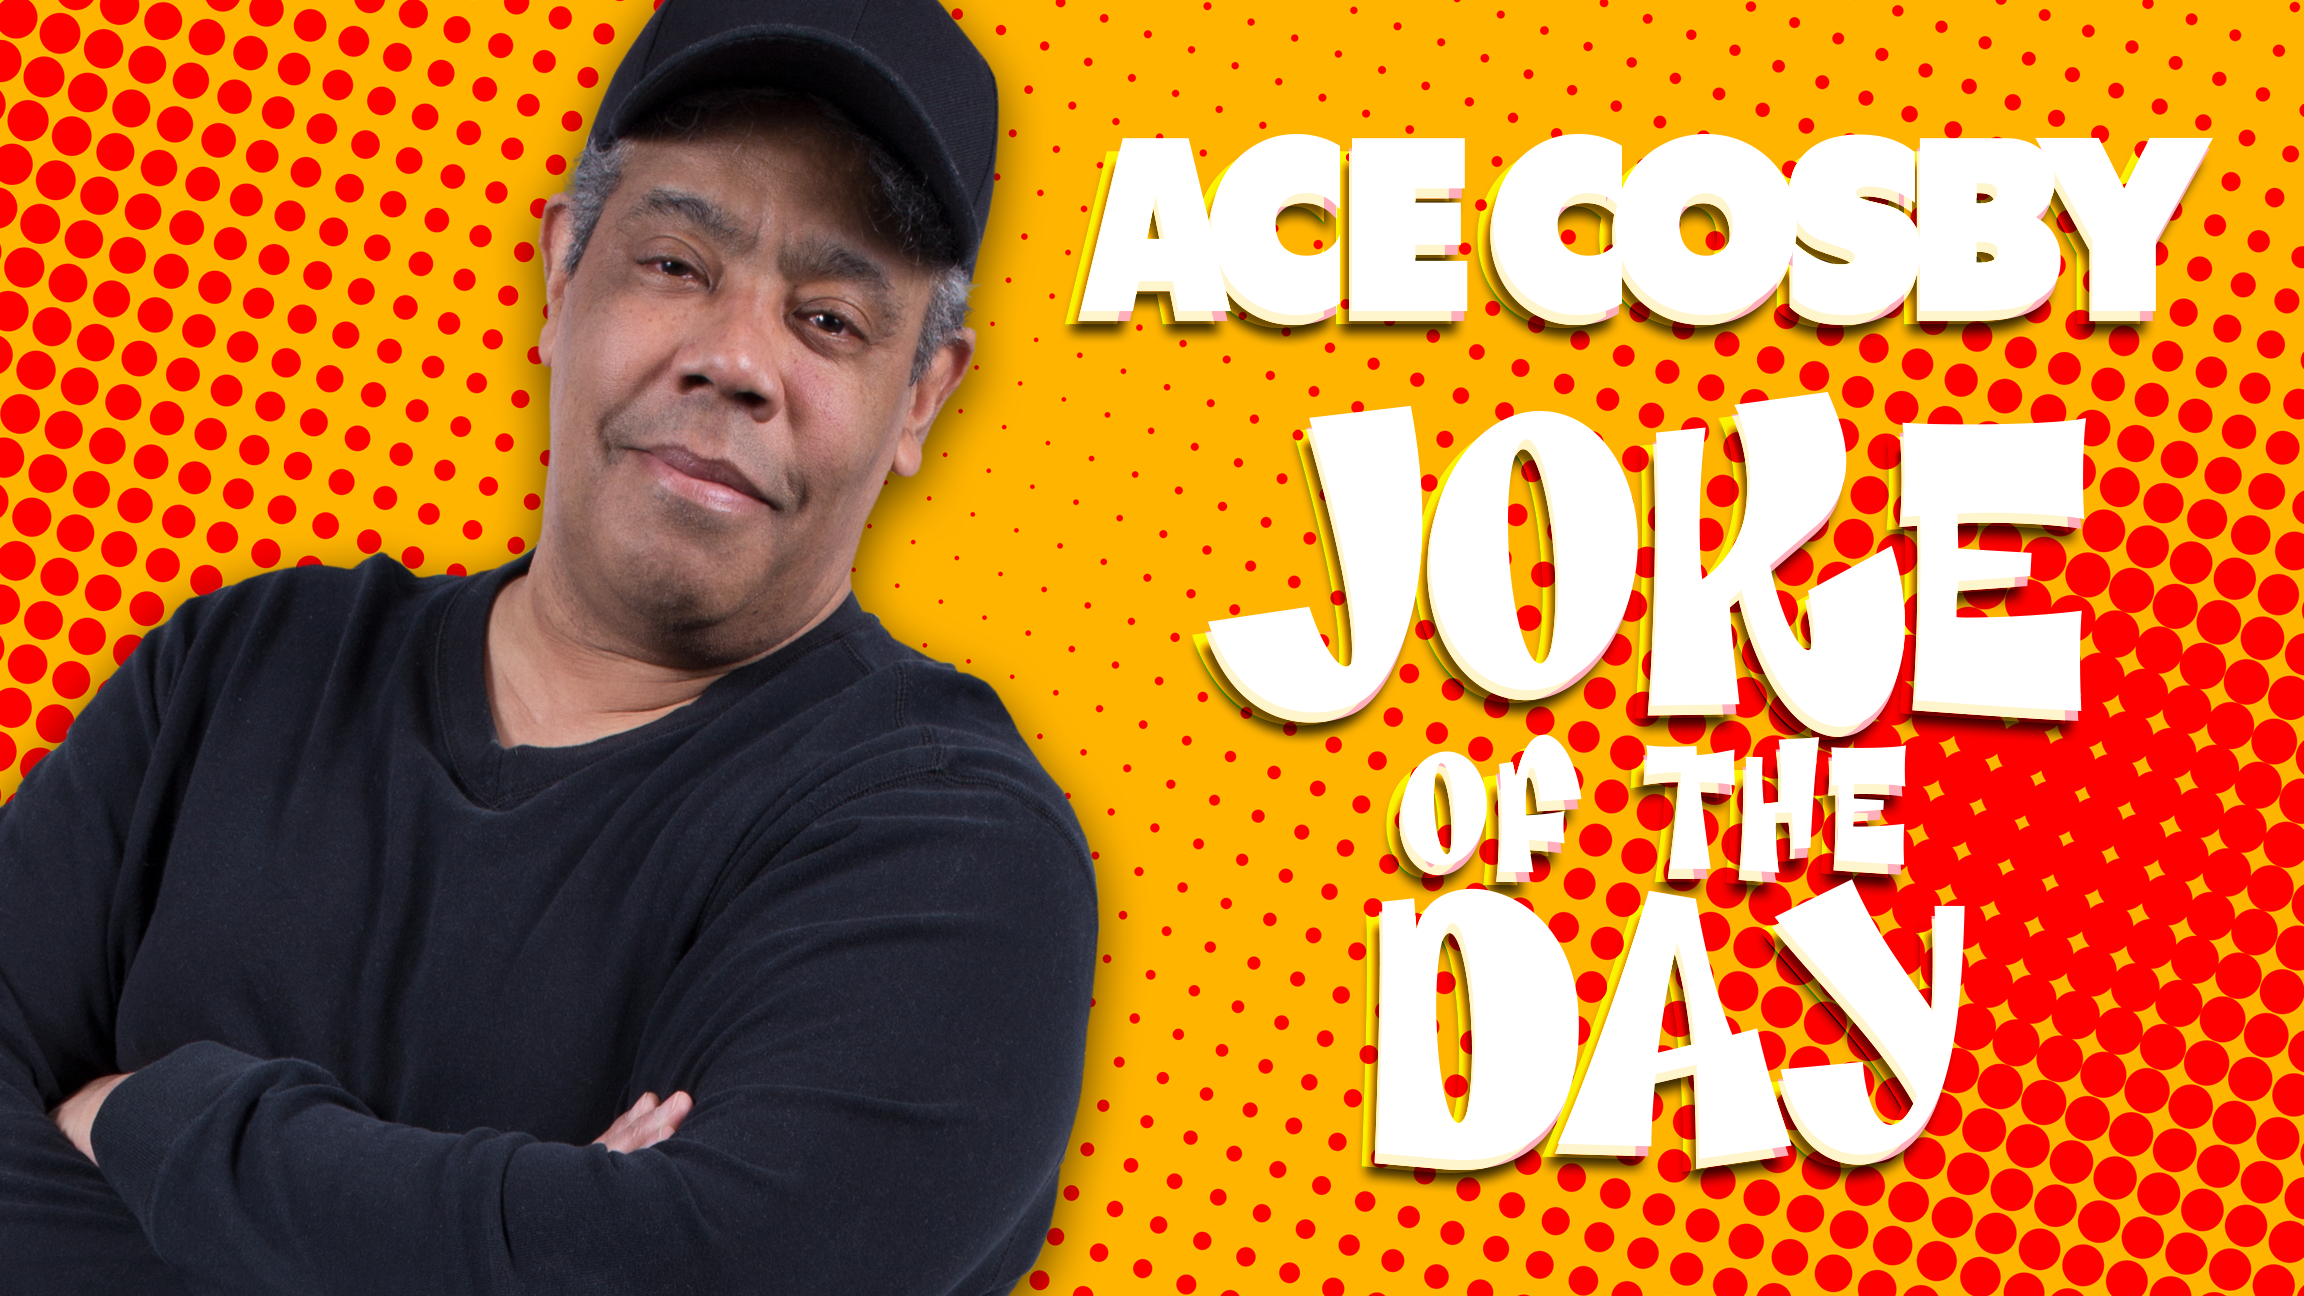 Ace's Joke Of The Day – A Clean House